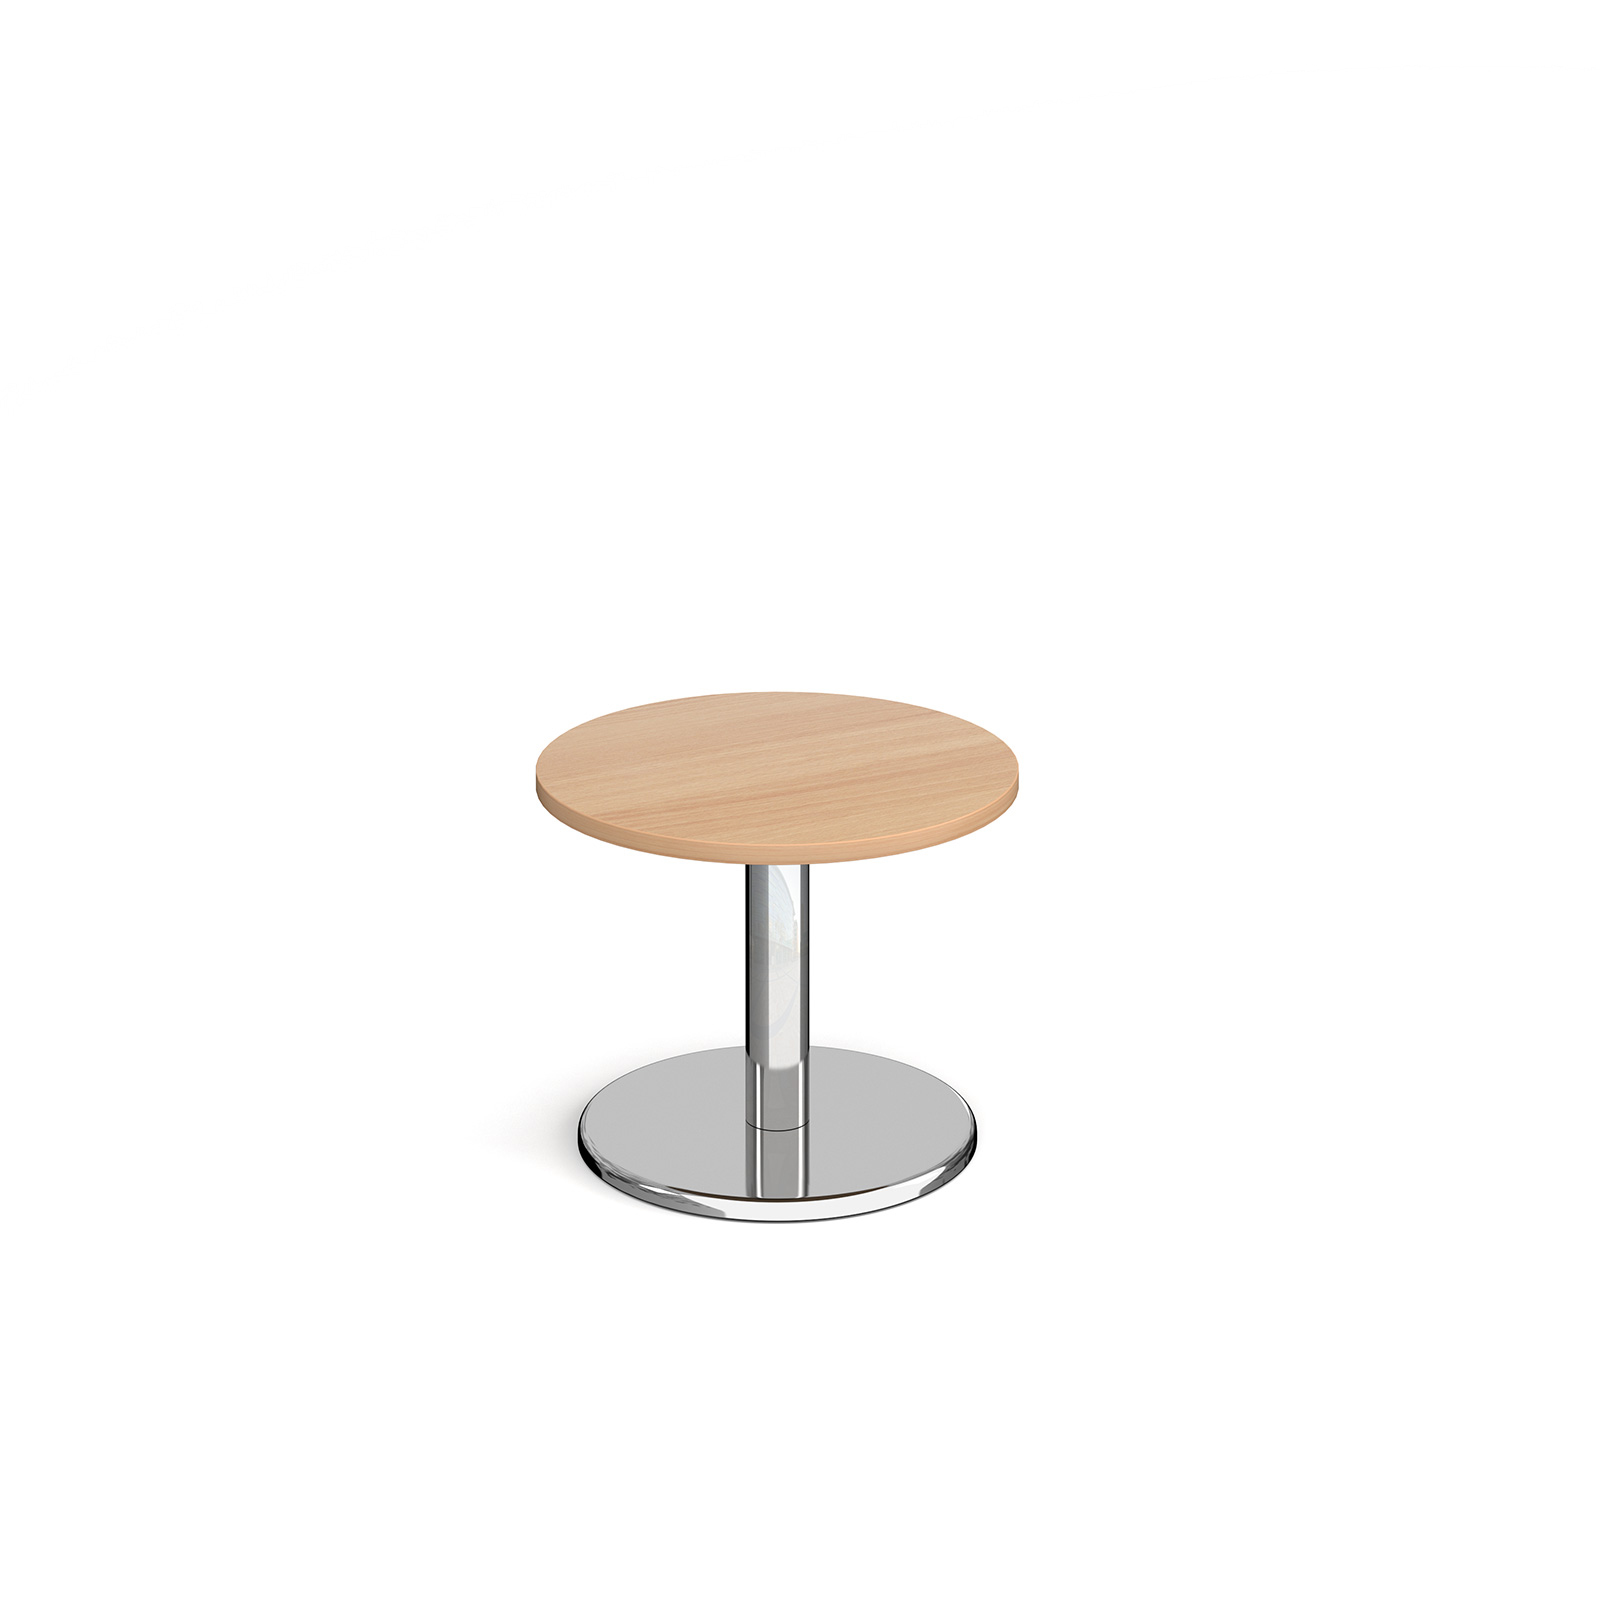 Coffee Pisa circular coffee table with round base